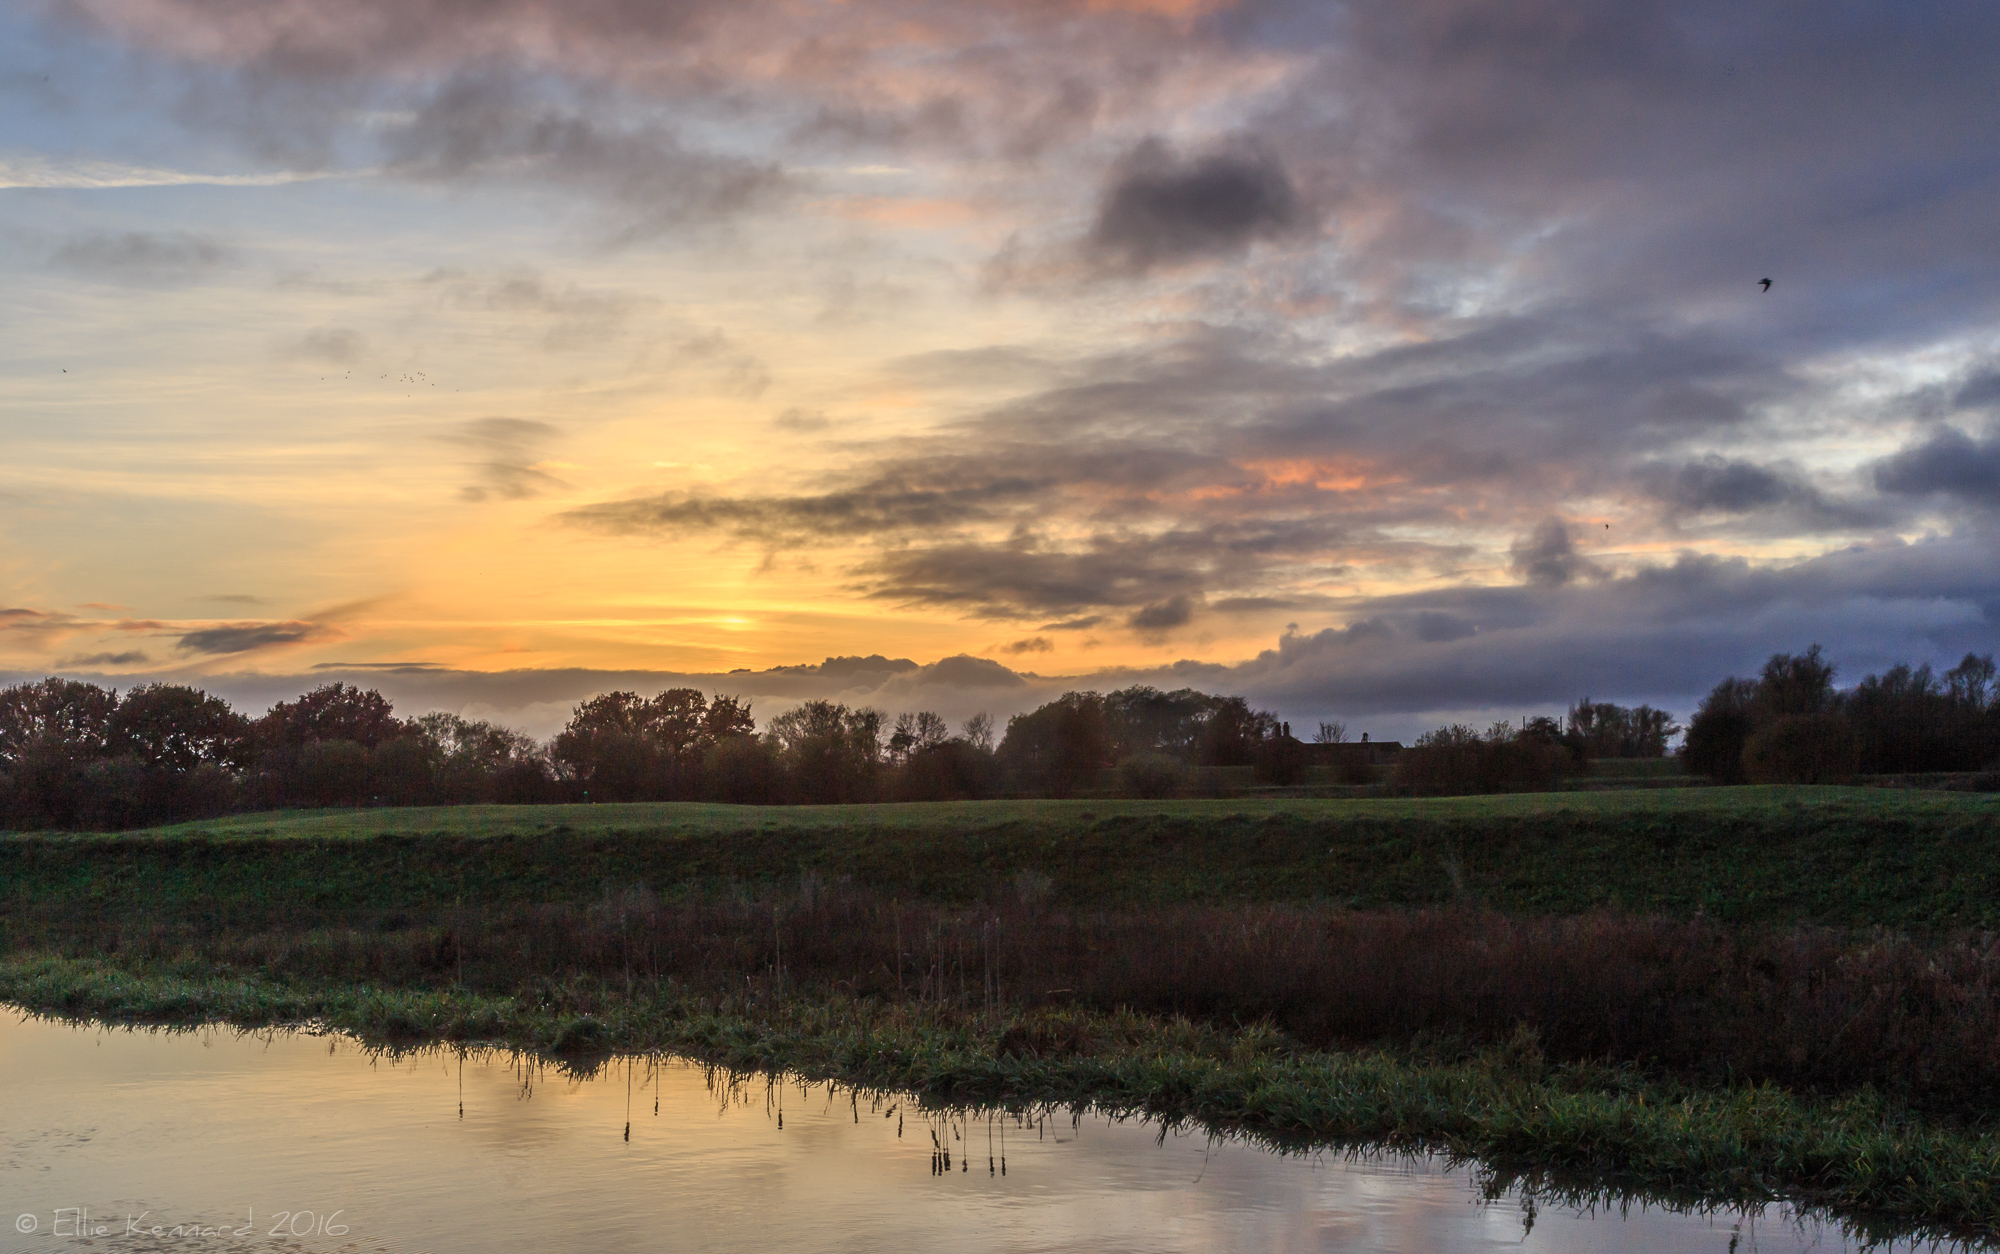 Walk along the river Witham in Dogdyke - Ellie Kennard 2016